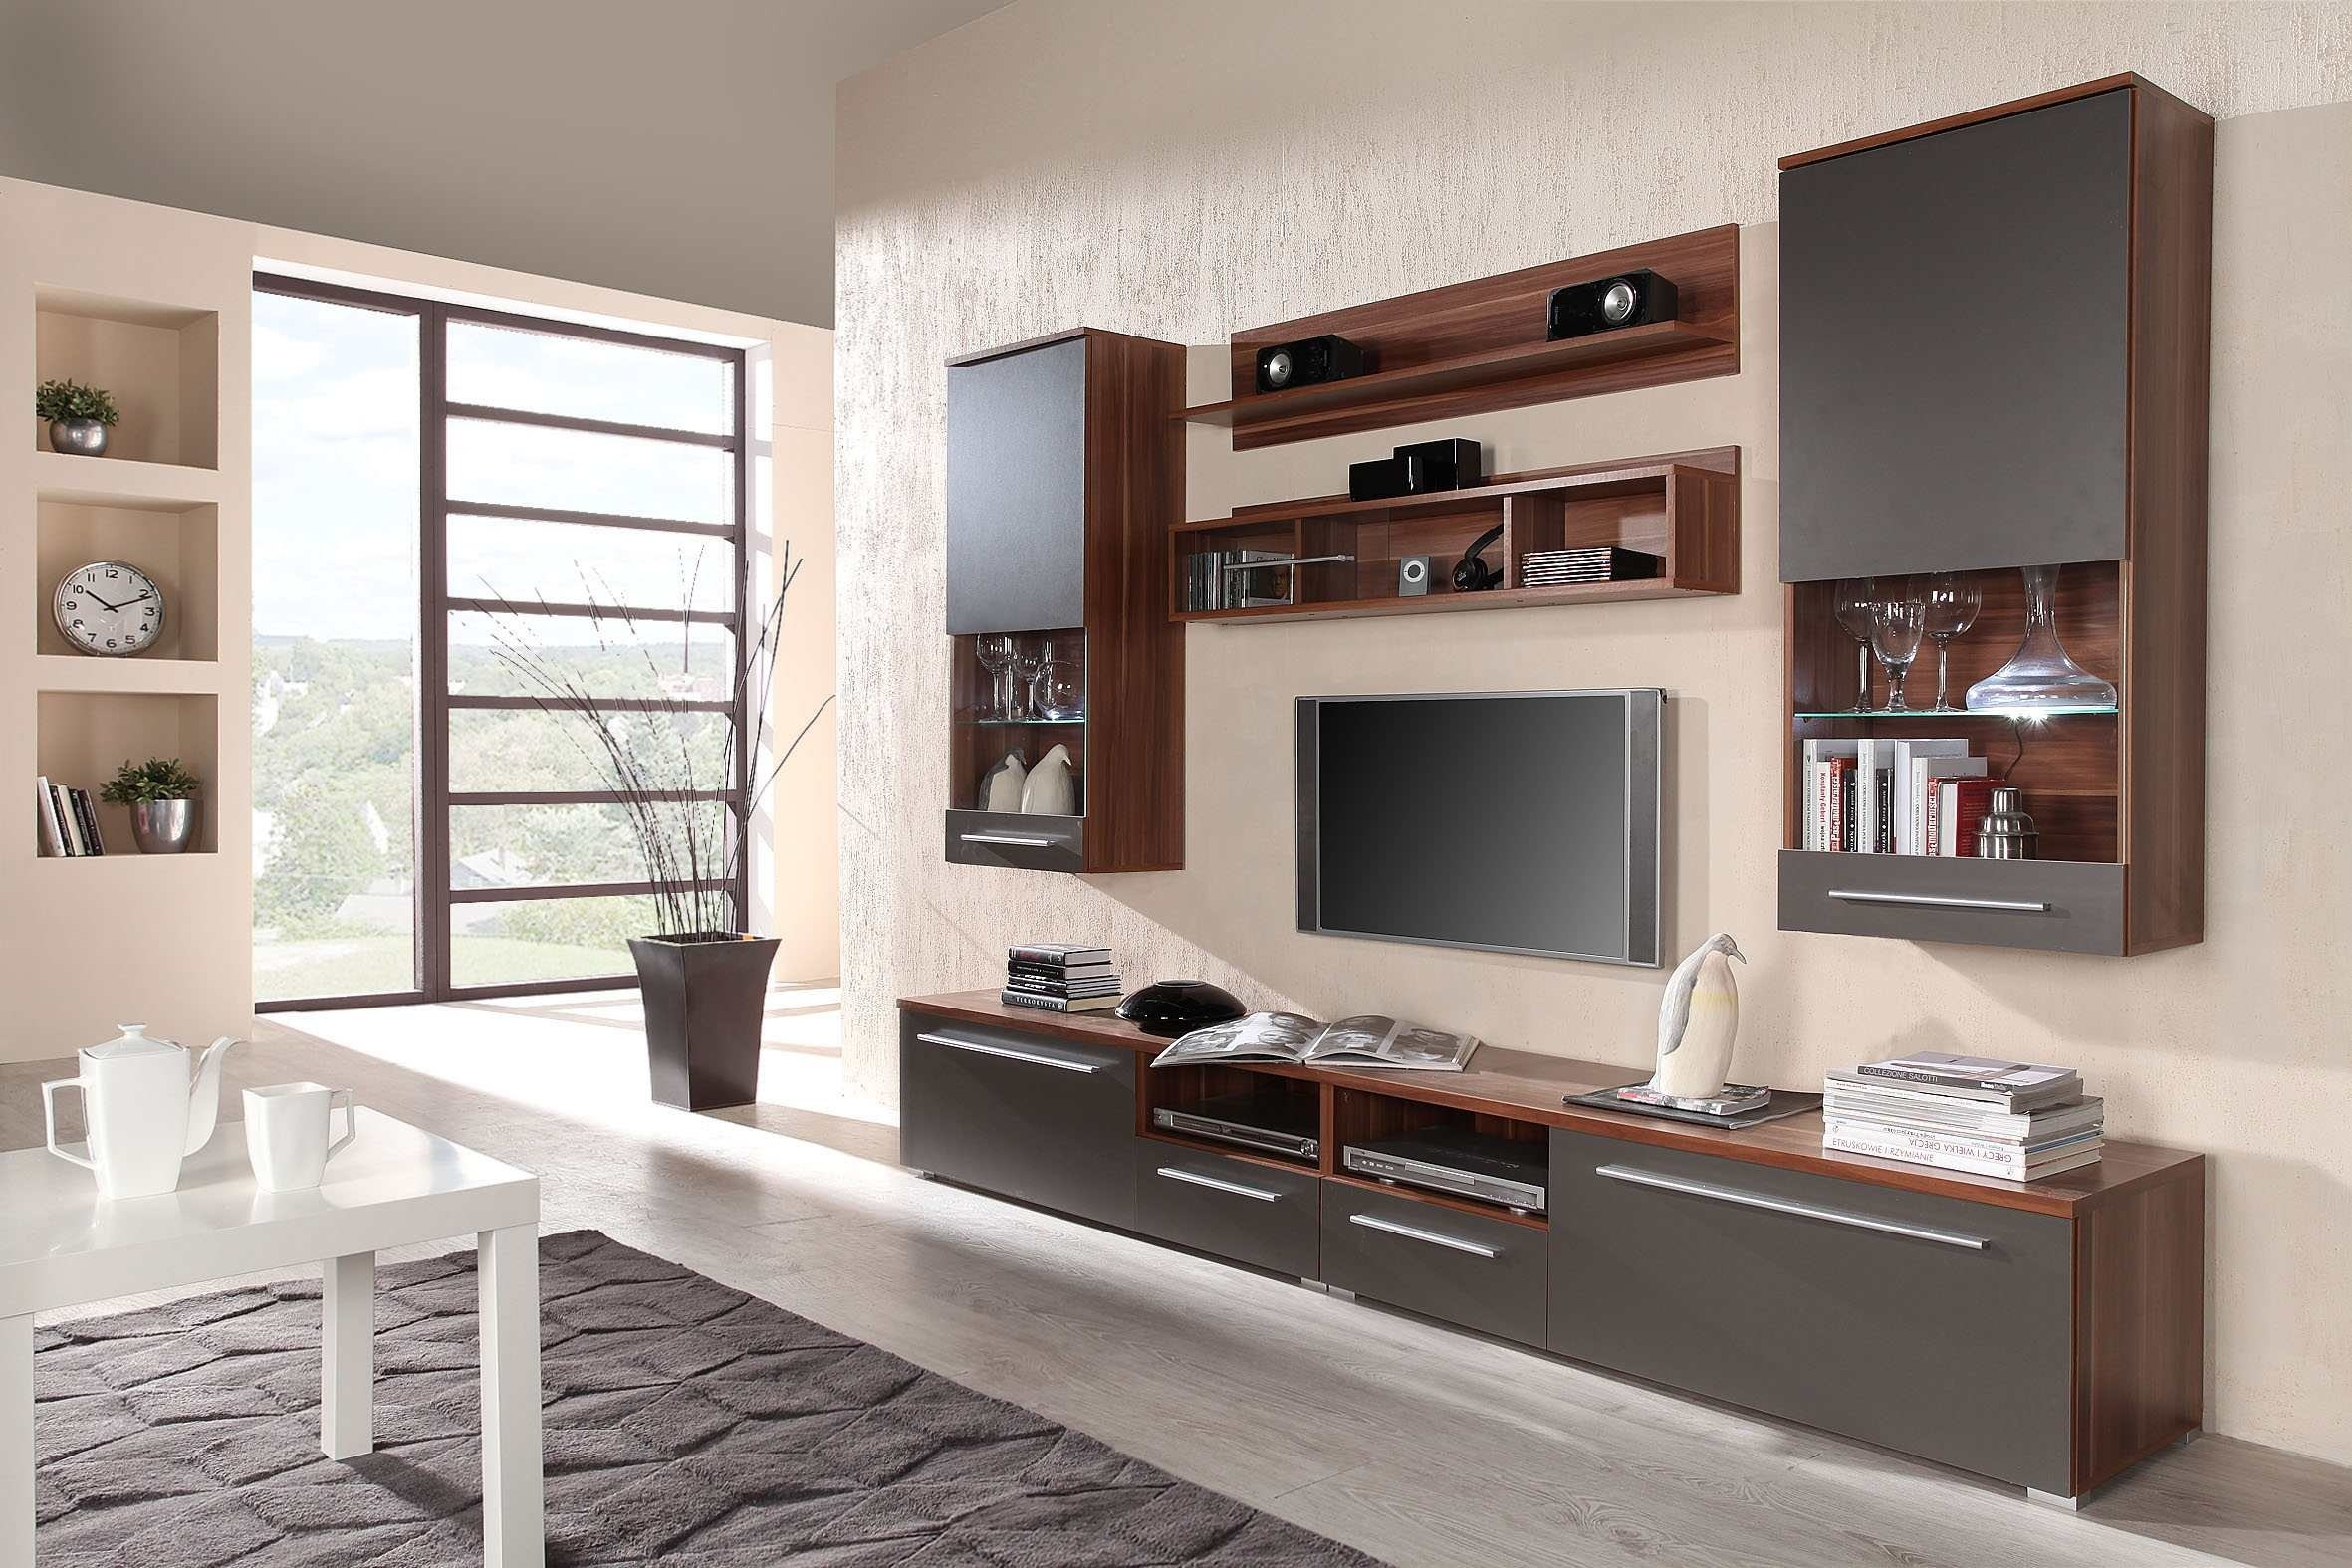 20 Modern Tv Unit Design Ideas For Bedroom Living Room With Pictures Throughout Wall Units For Living Room (View 14 of 15)